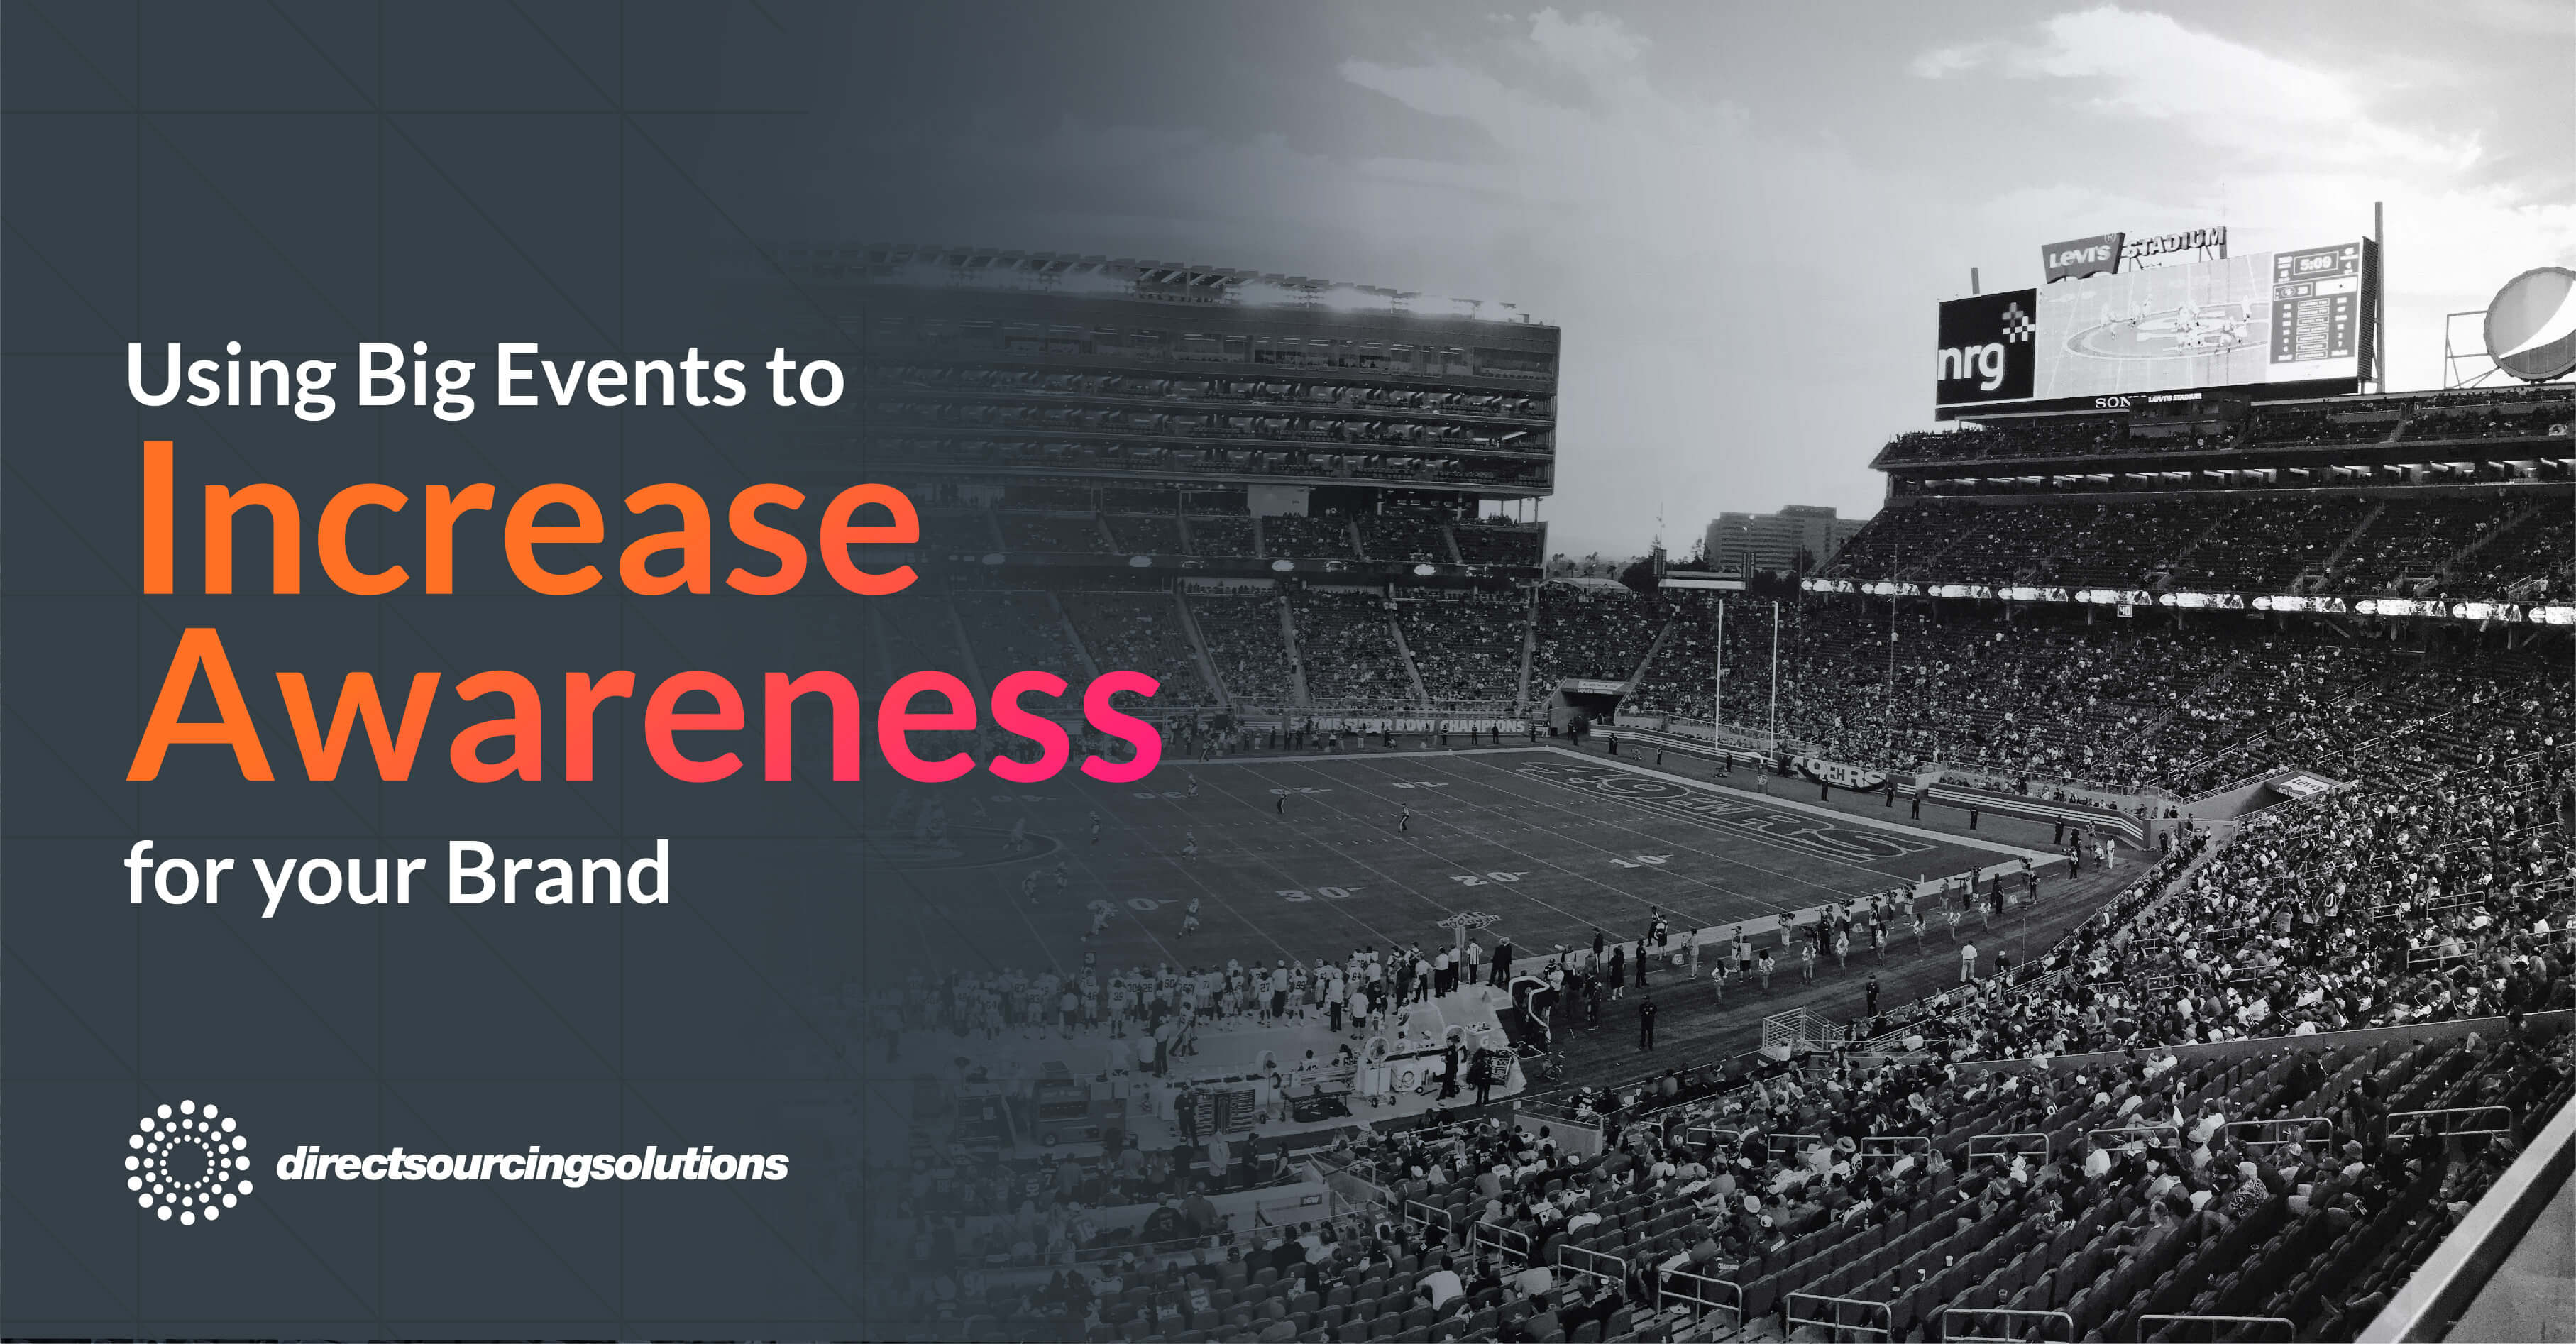 Using Big Events to Increase Awareness for your Brand